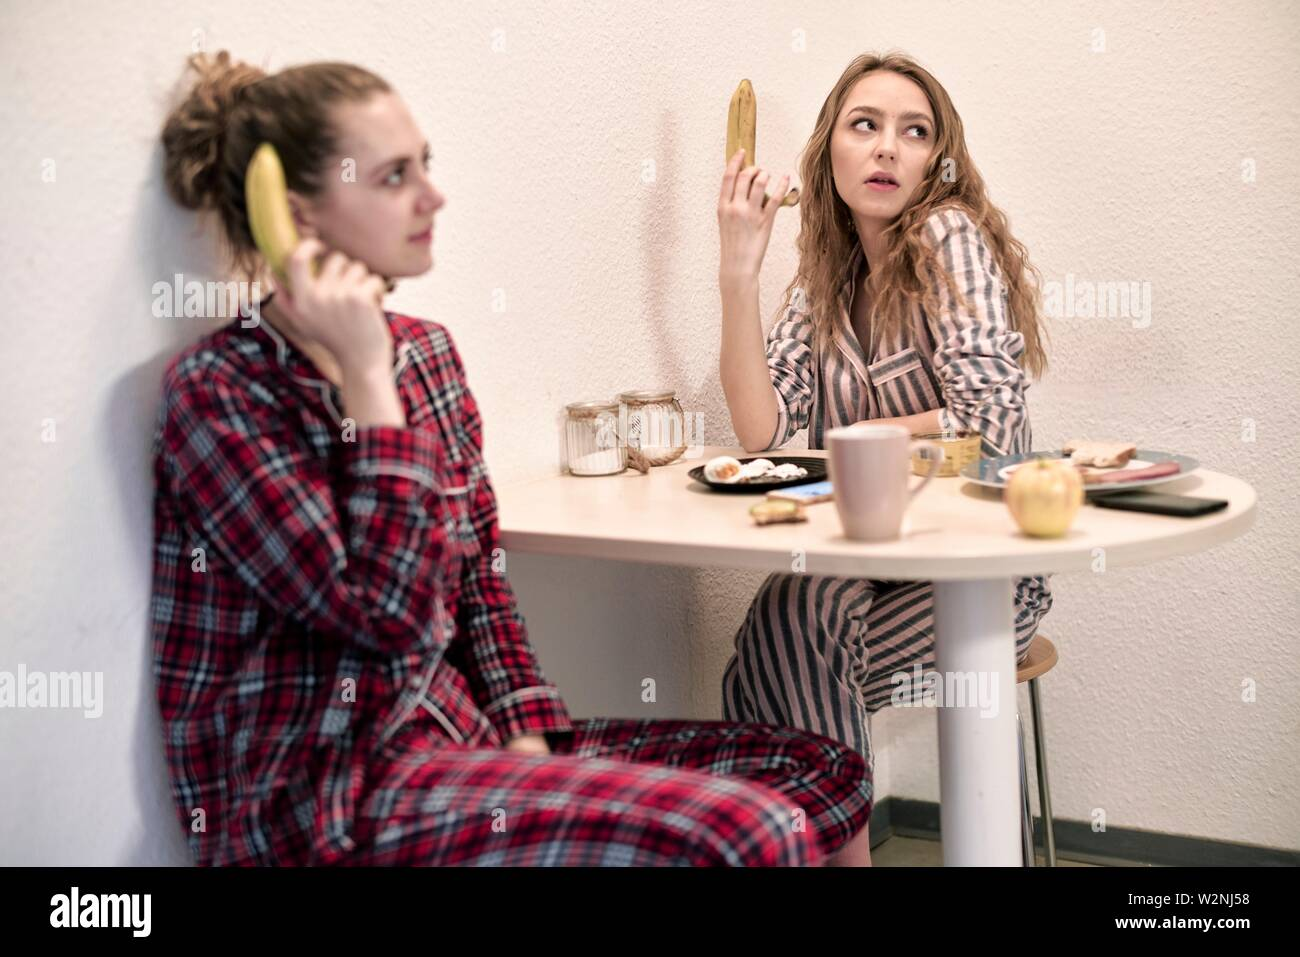 young annoyed women in pyjamas holding healthy bananas at breakfast table in shared student flat - Stock Image